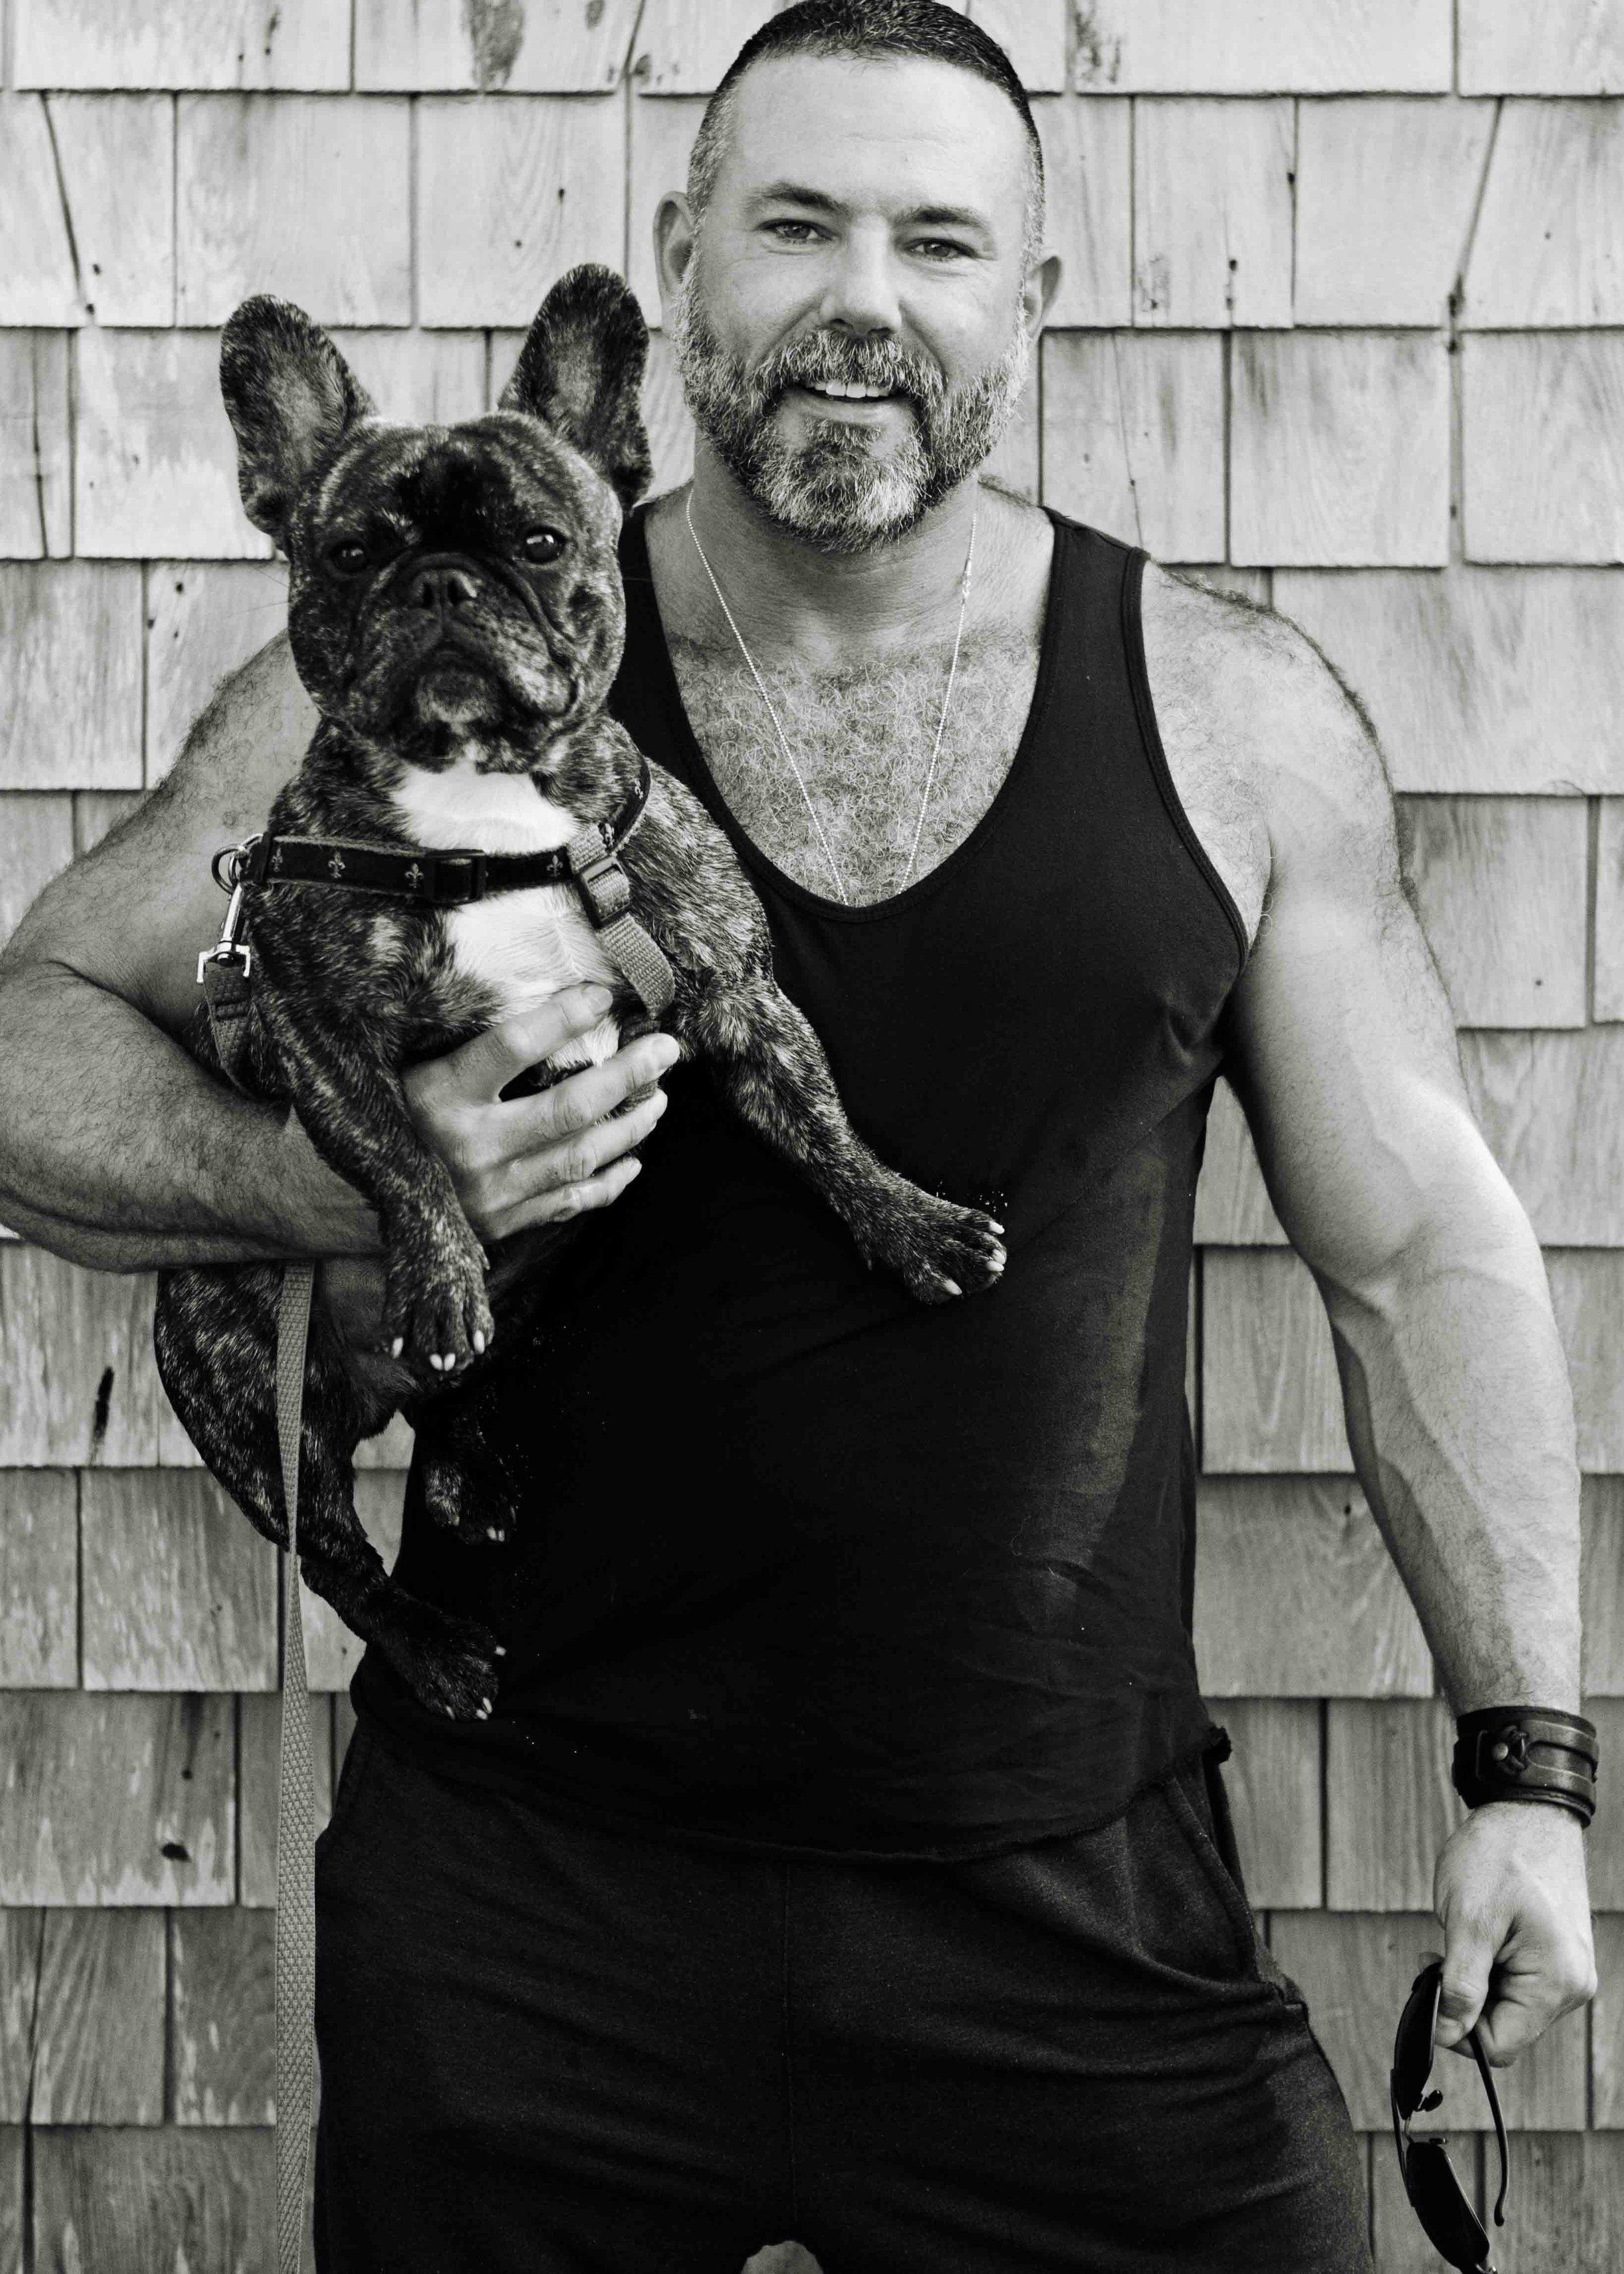 EDC_Portraits_In_Provincetown_2016_07_124 copy.jpg